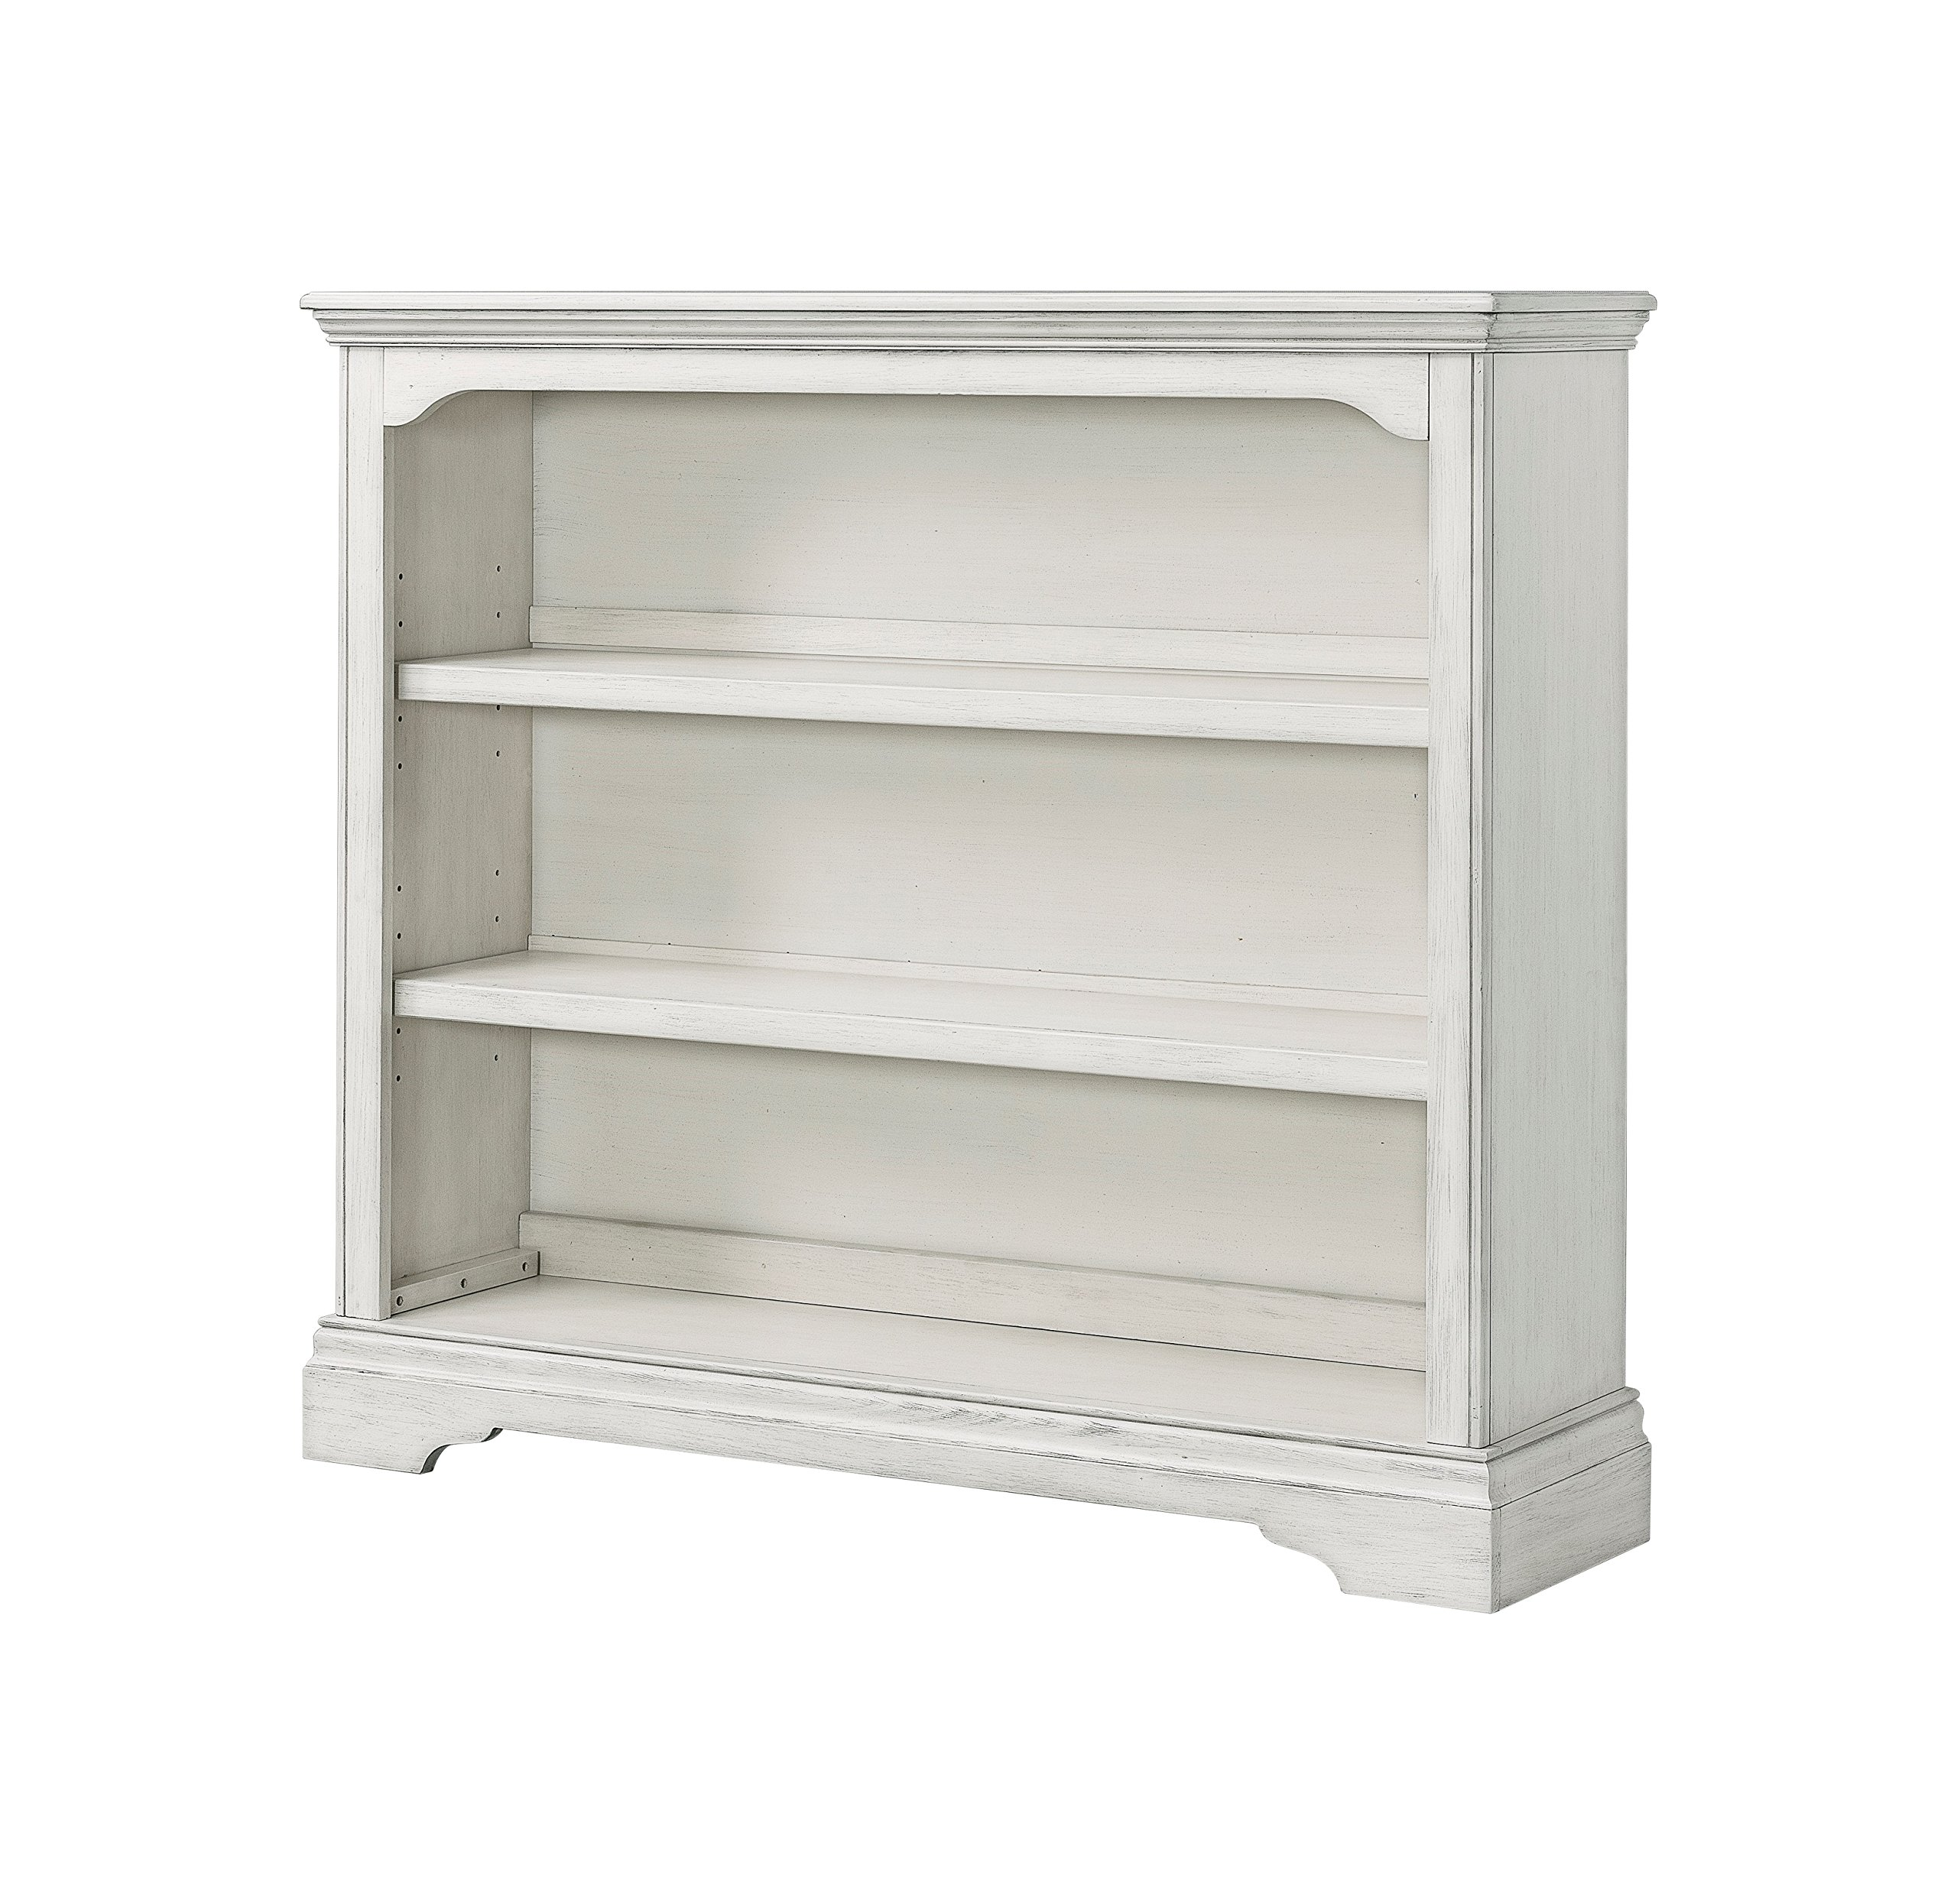 Westwood Design Riley Convertible Hutch Bookcase, Brushed White